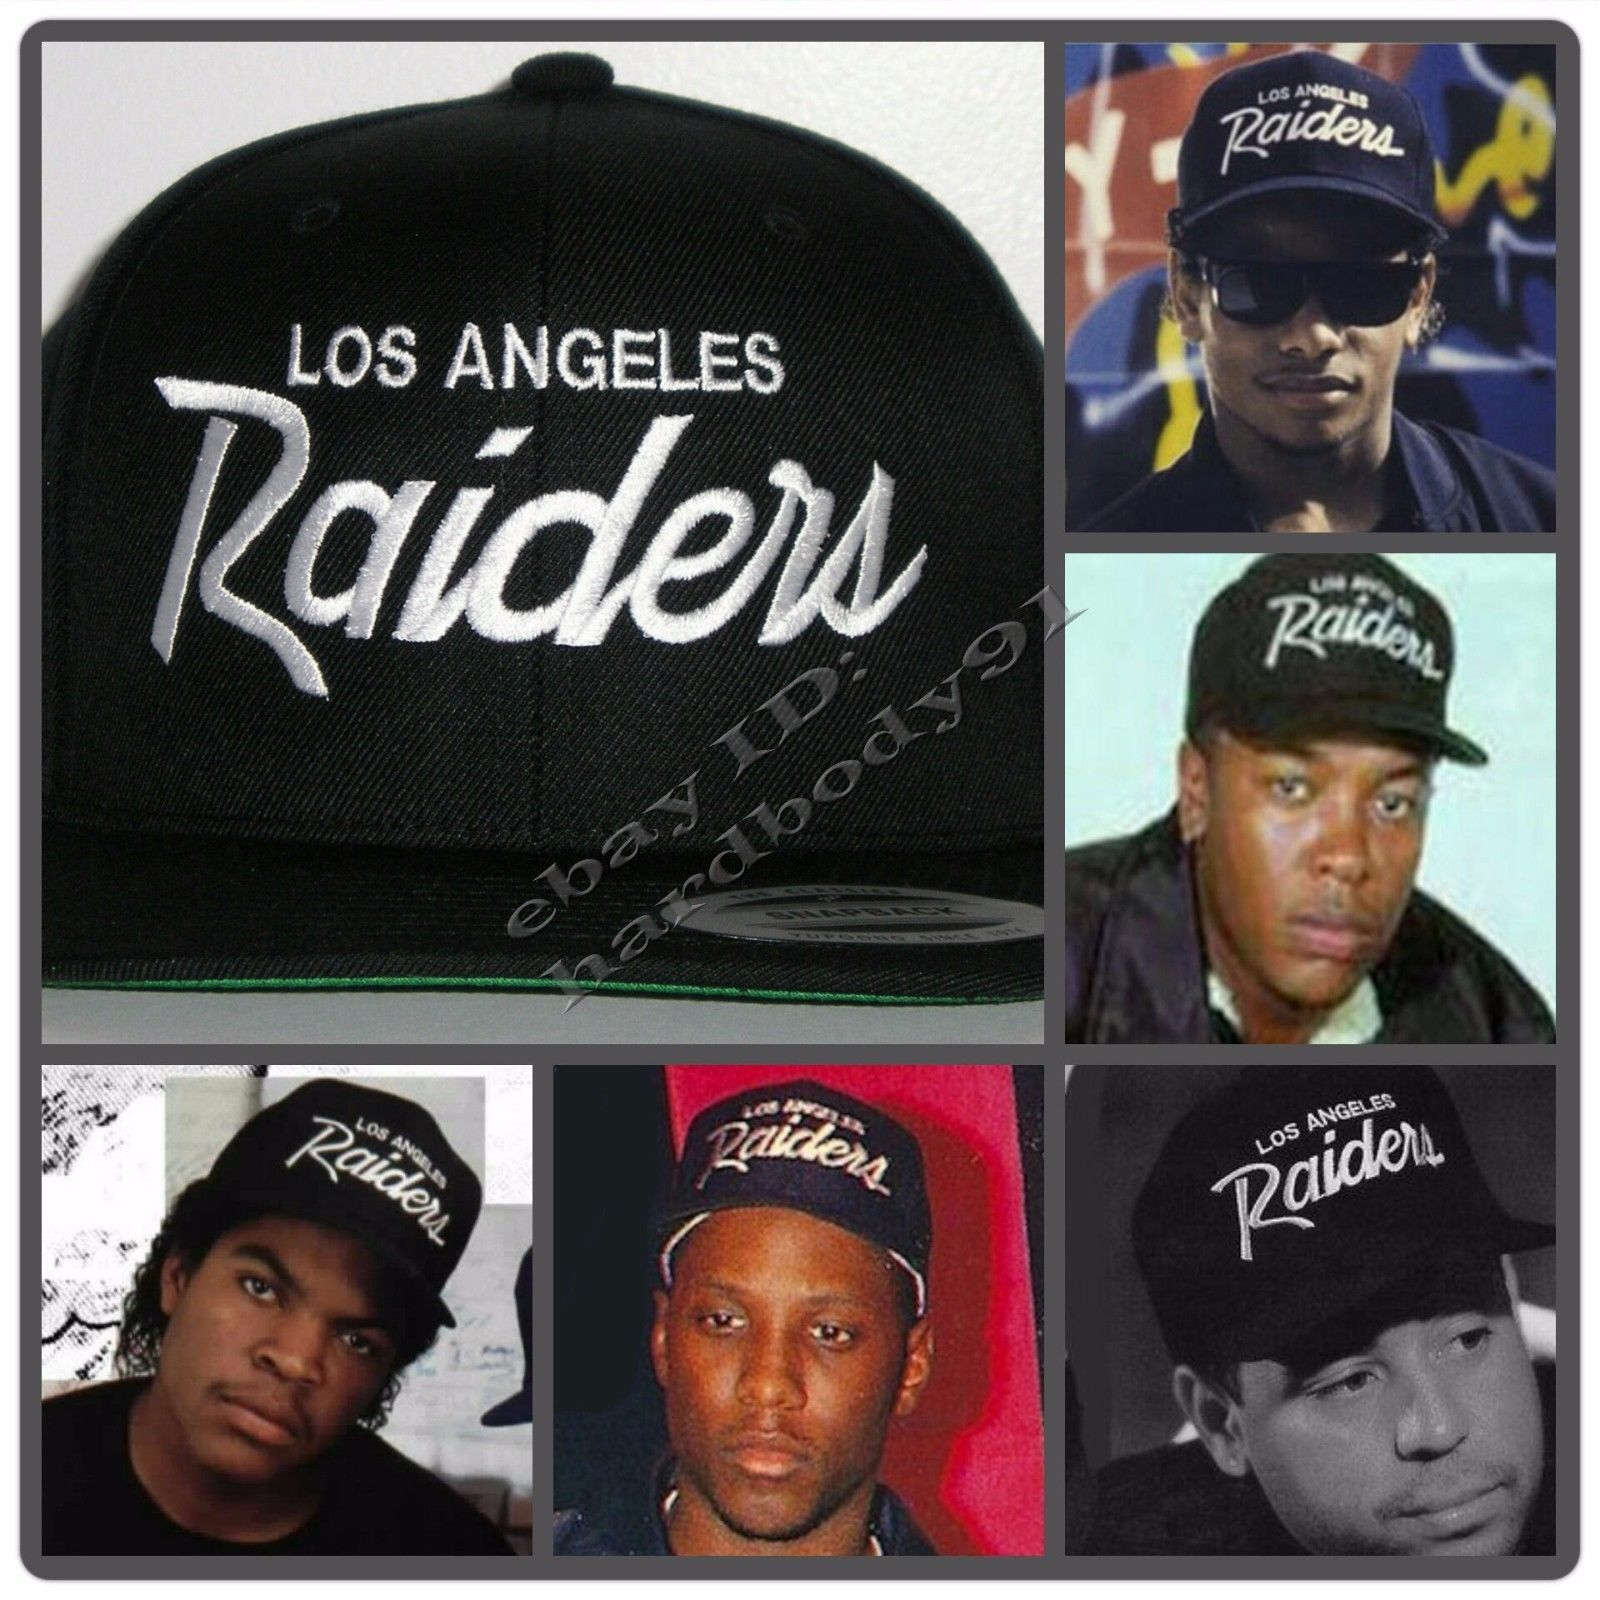 f179d708f1769 More like the NWA ones - brand is Yuurong or something    Vintage Replica  La Los Angeles Raiders Script Cap Hat Snapback Black NWA Eazy E